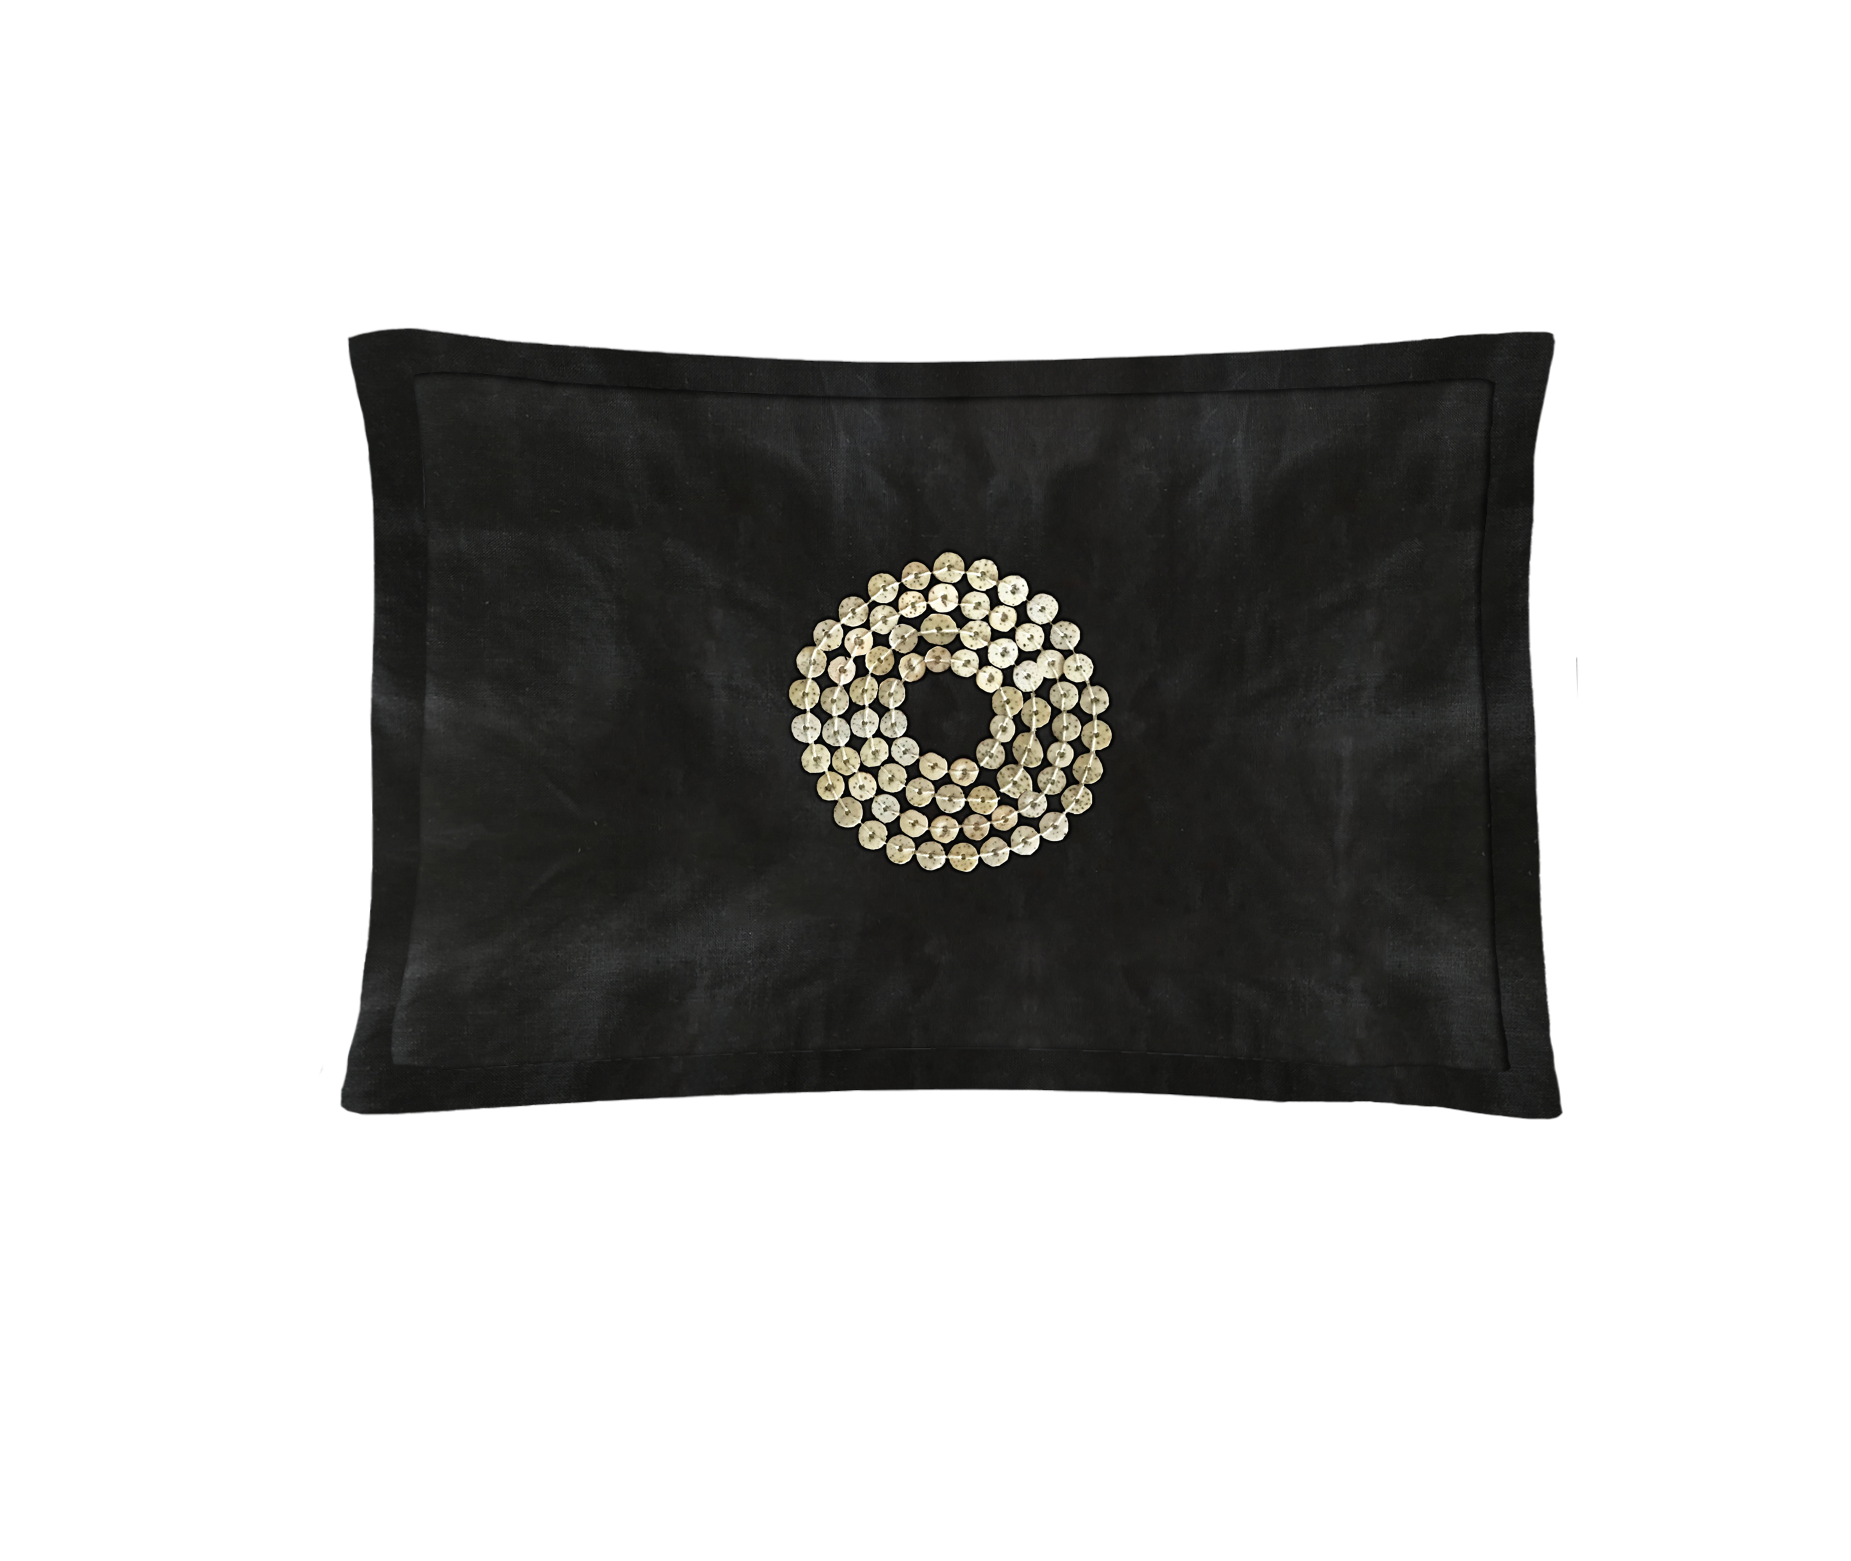 Black Hand-Dyed throw pillow with African hand-made beads.